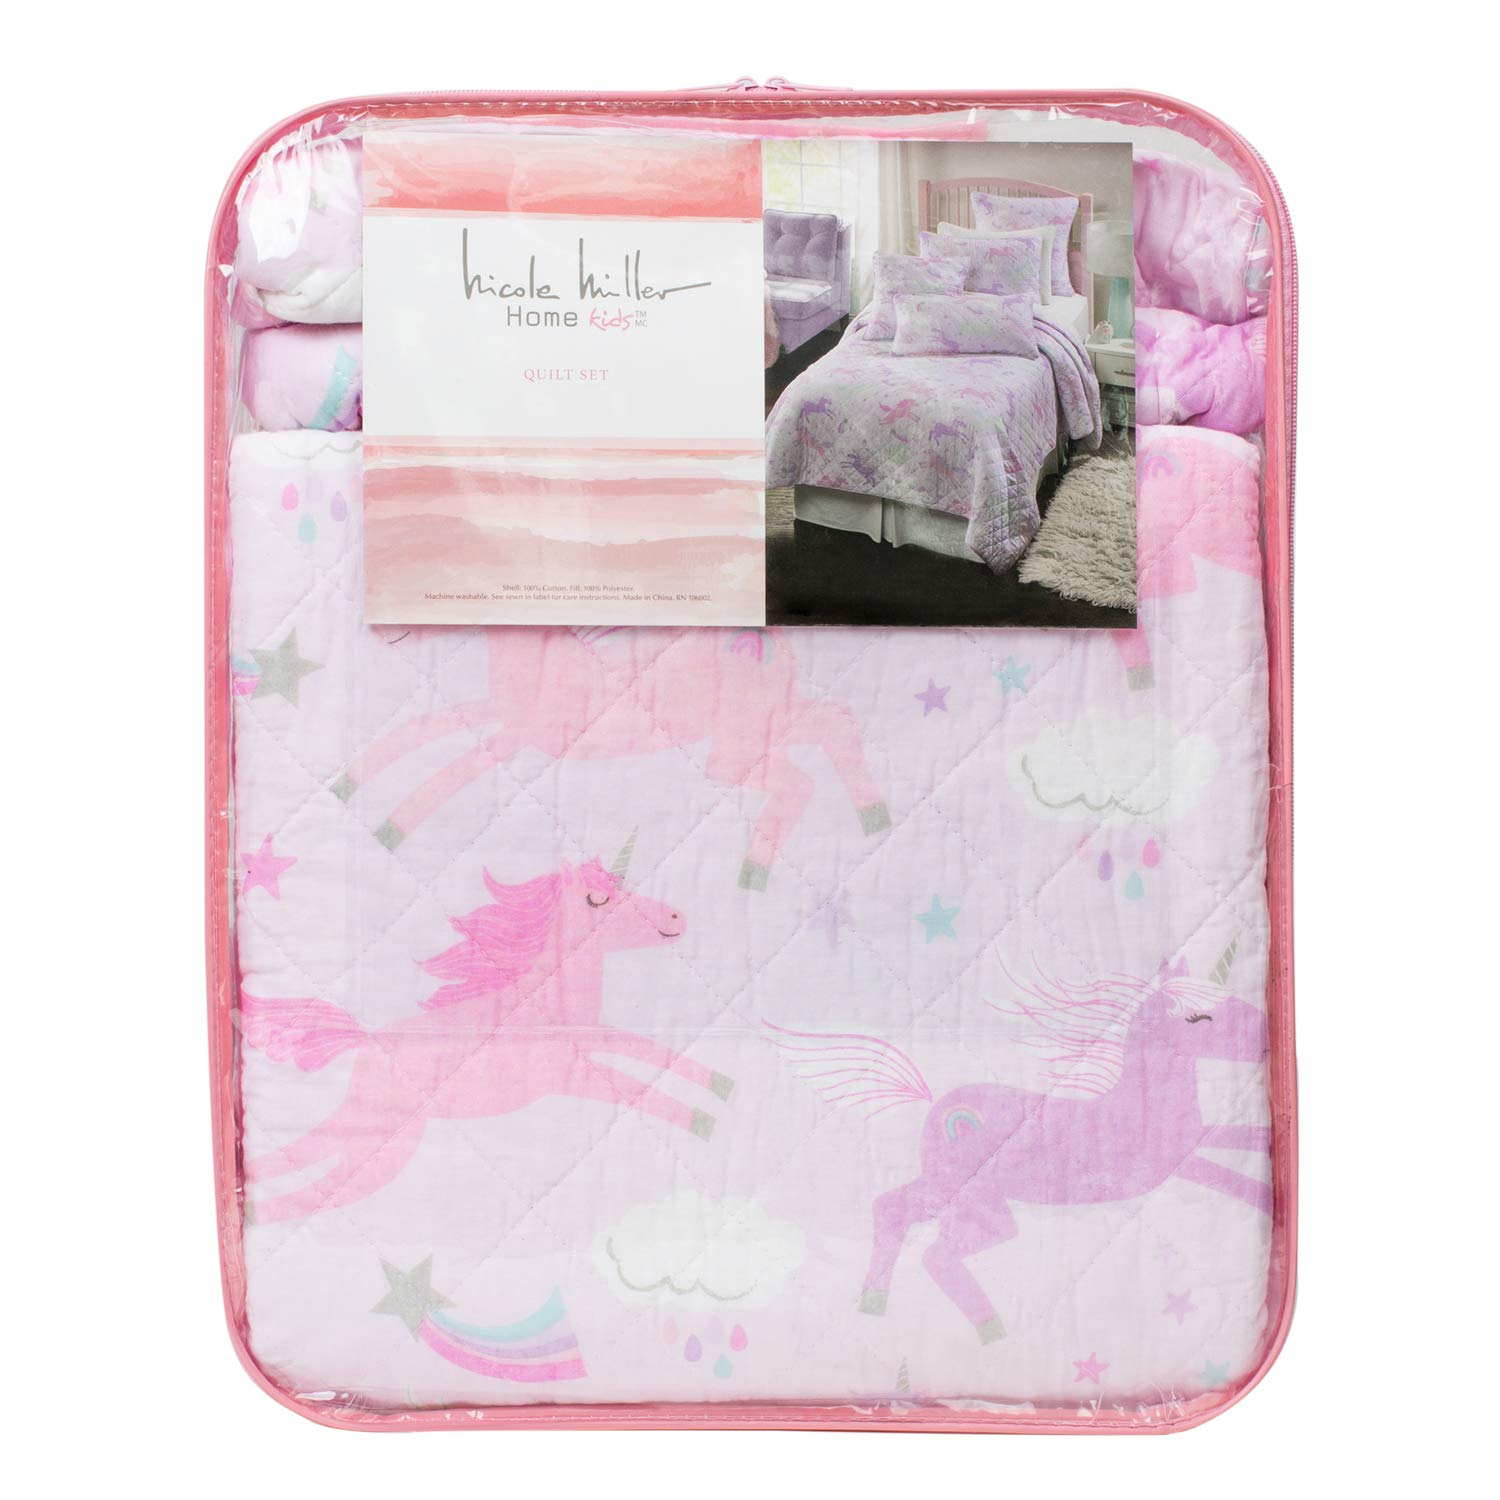 Nicole Miller 2 Piece Twin Single Bed Magical Pastel Unicorns Cotton Quilt Set Unicorns Clouds Stars Purple Pink Mint White